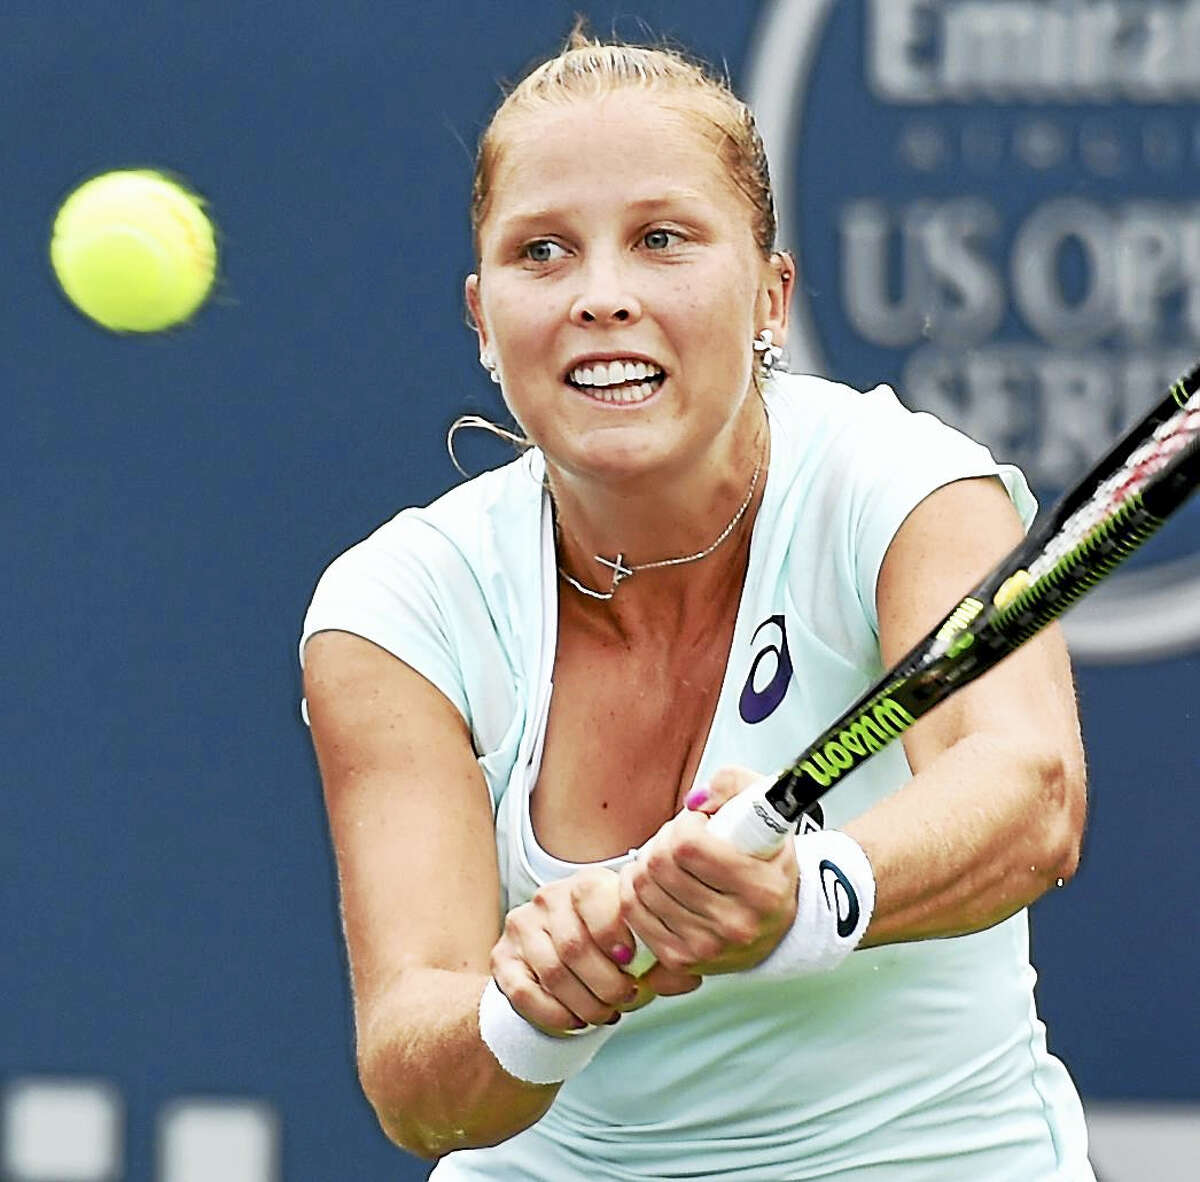 Shelby Rogers returns a shot during her match against Kristina Mladenovic of France at the Connecticut Open on Sunday.